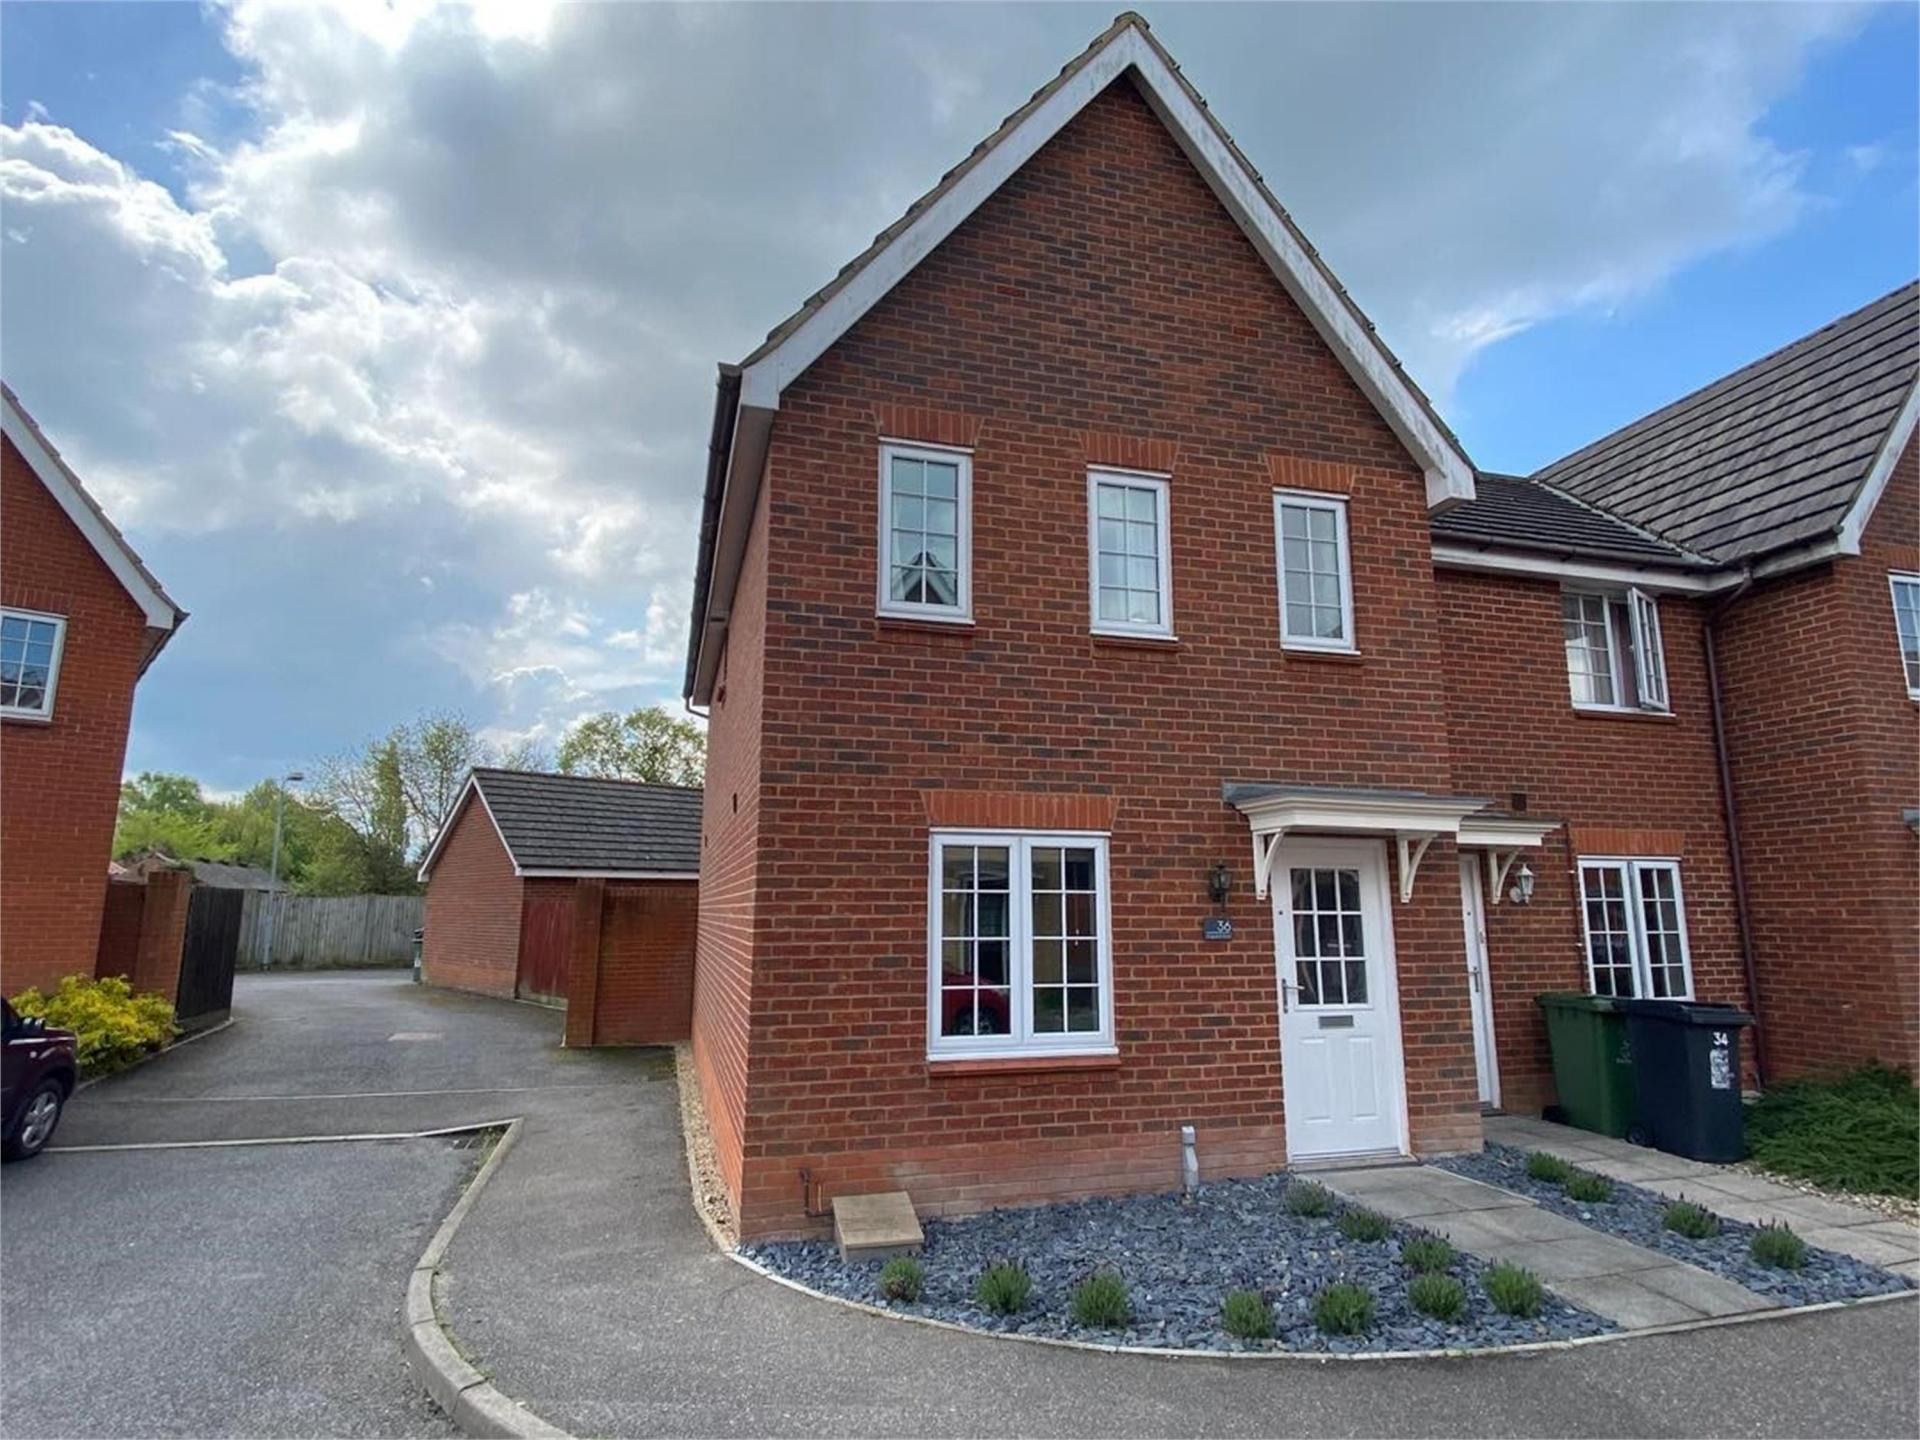 Millbank Estate Agents (Attleborough) new house for sale